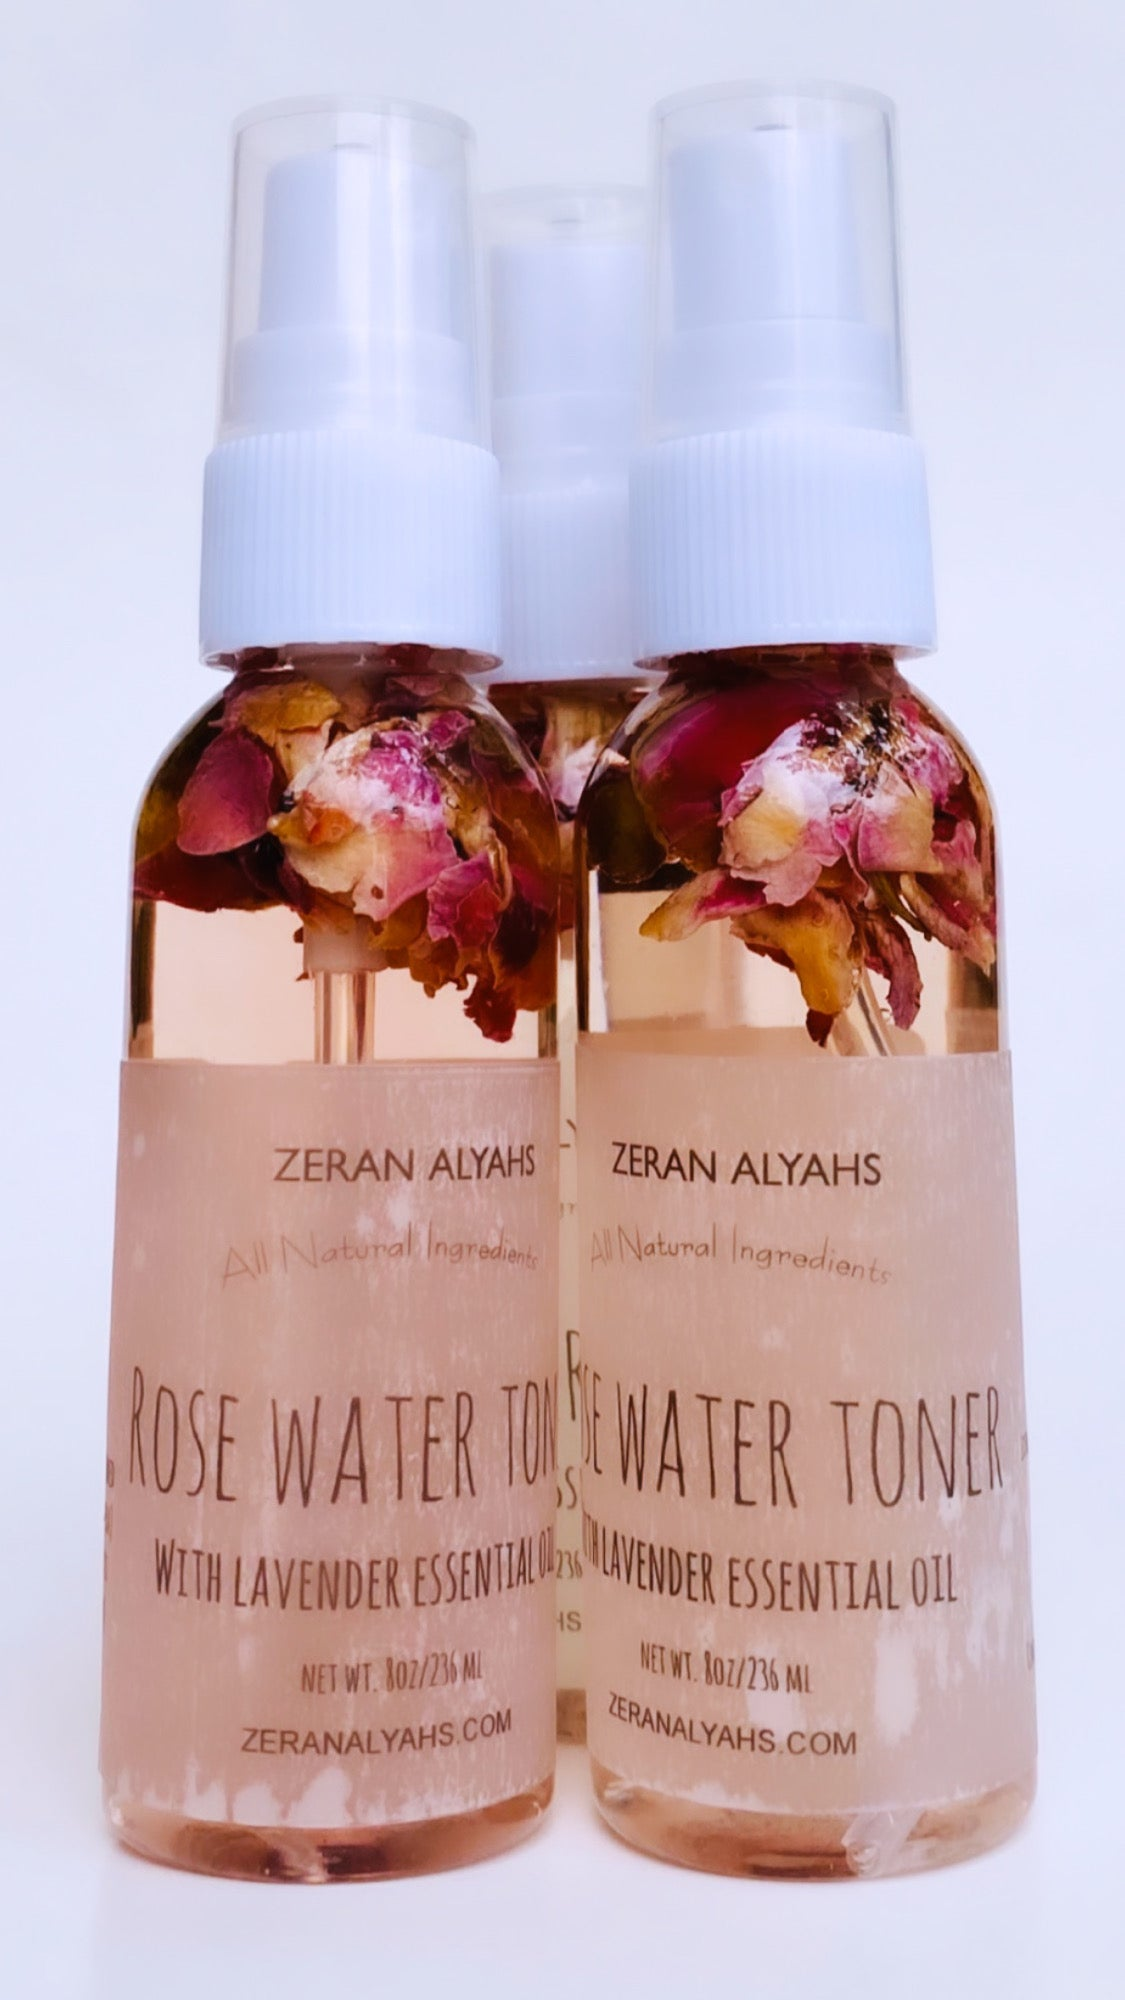 Rose Water Toner with Lavender Essential Oil